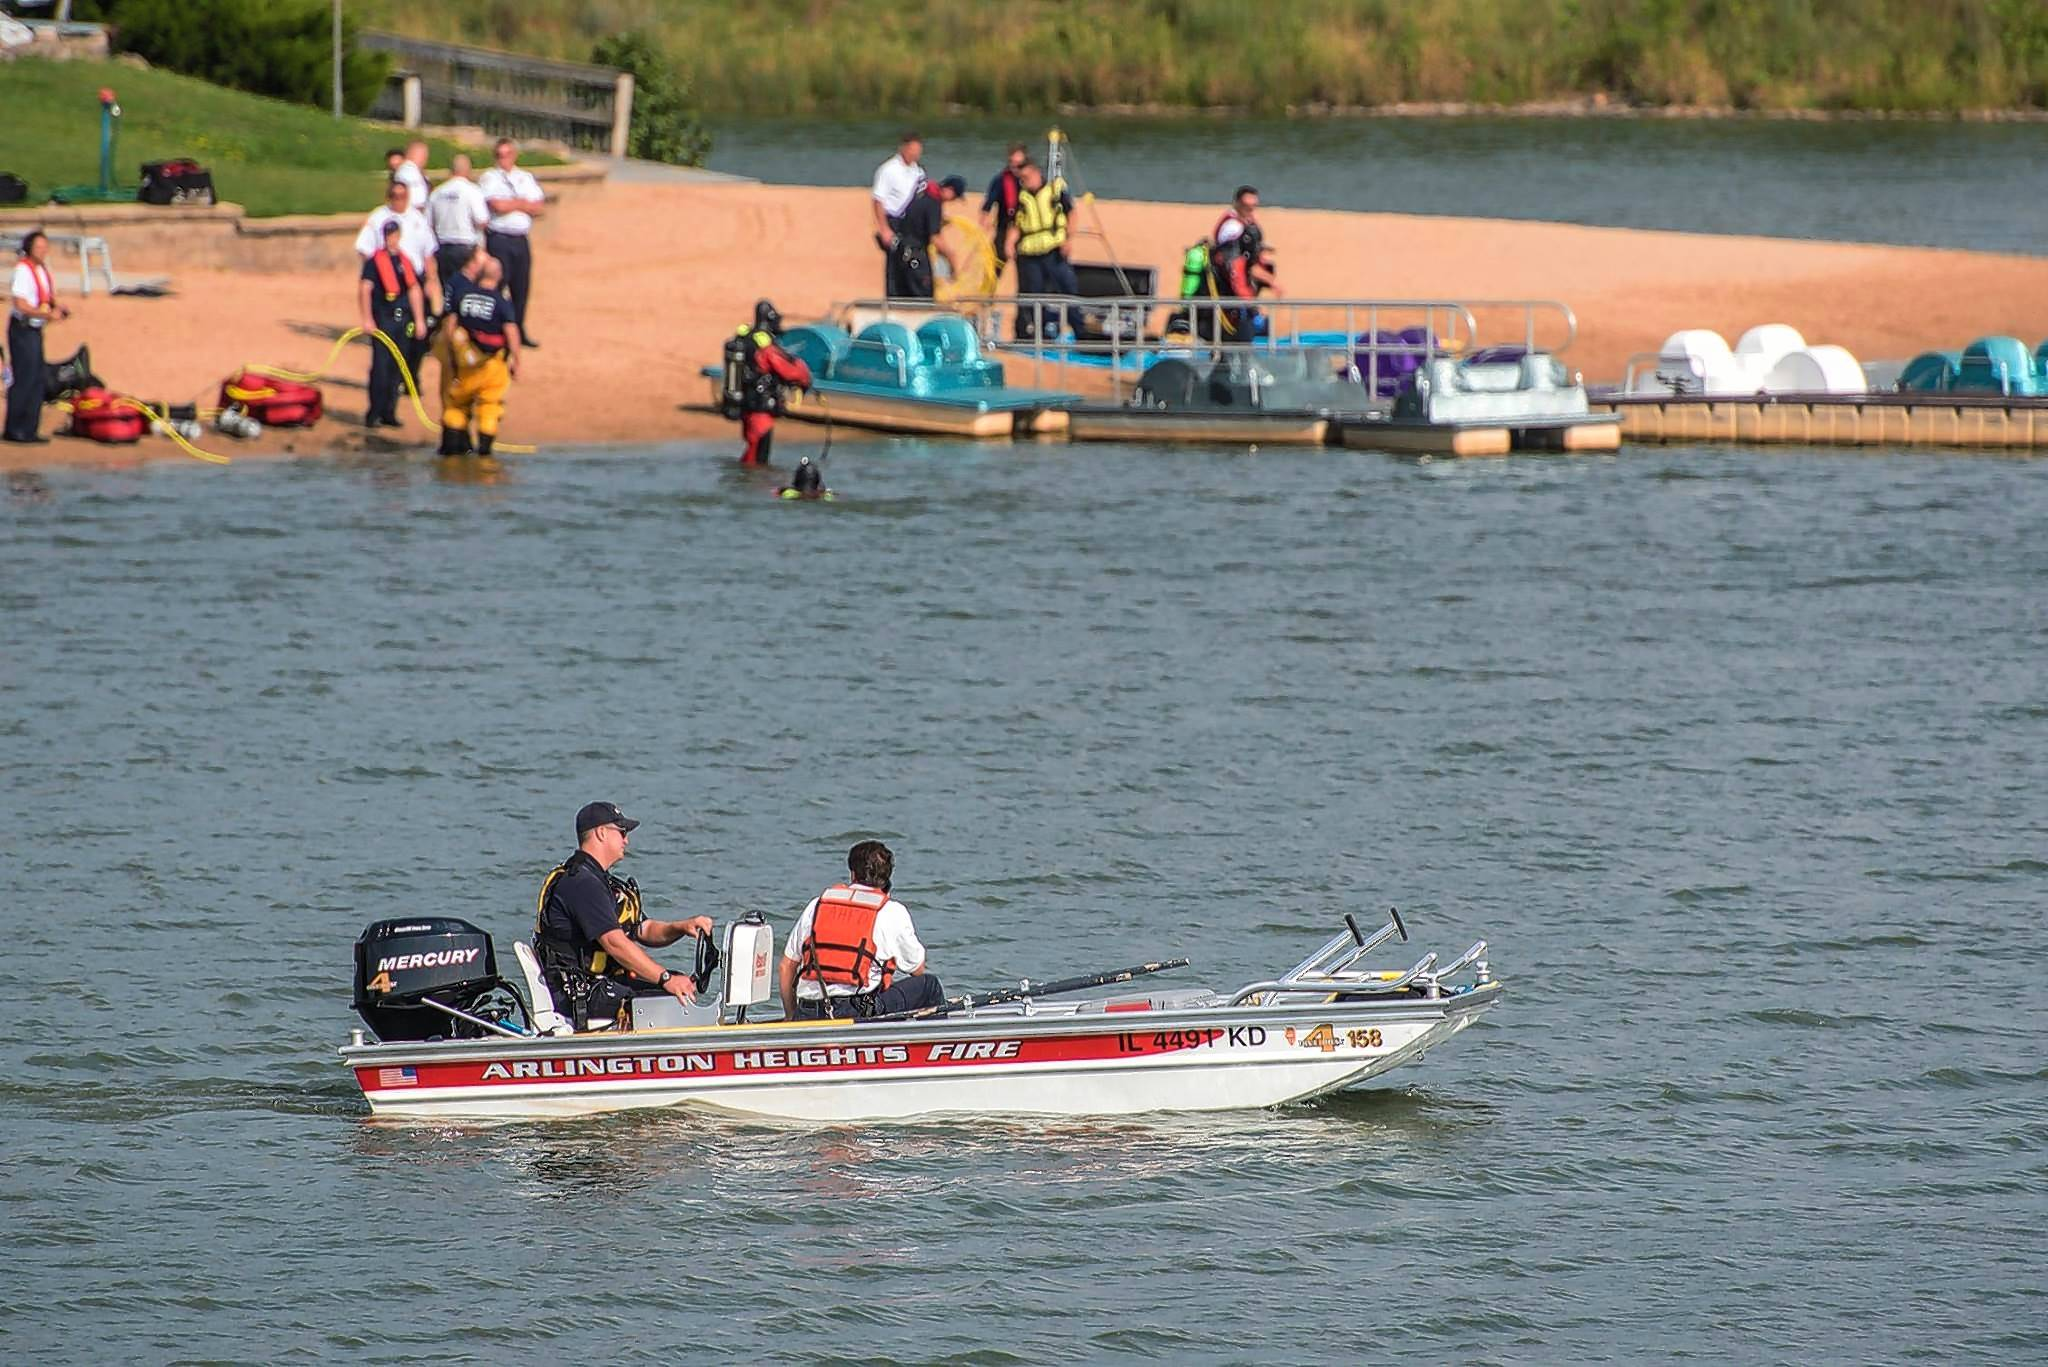 Police and fire departments search for a missing person in Lake Arlington Thursday. A 40-year-old woman was later rescued and taken to the hospital.